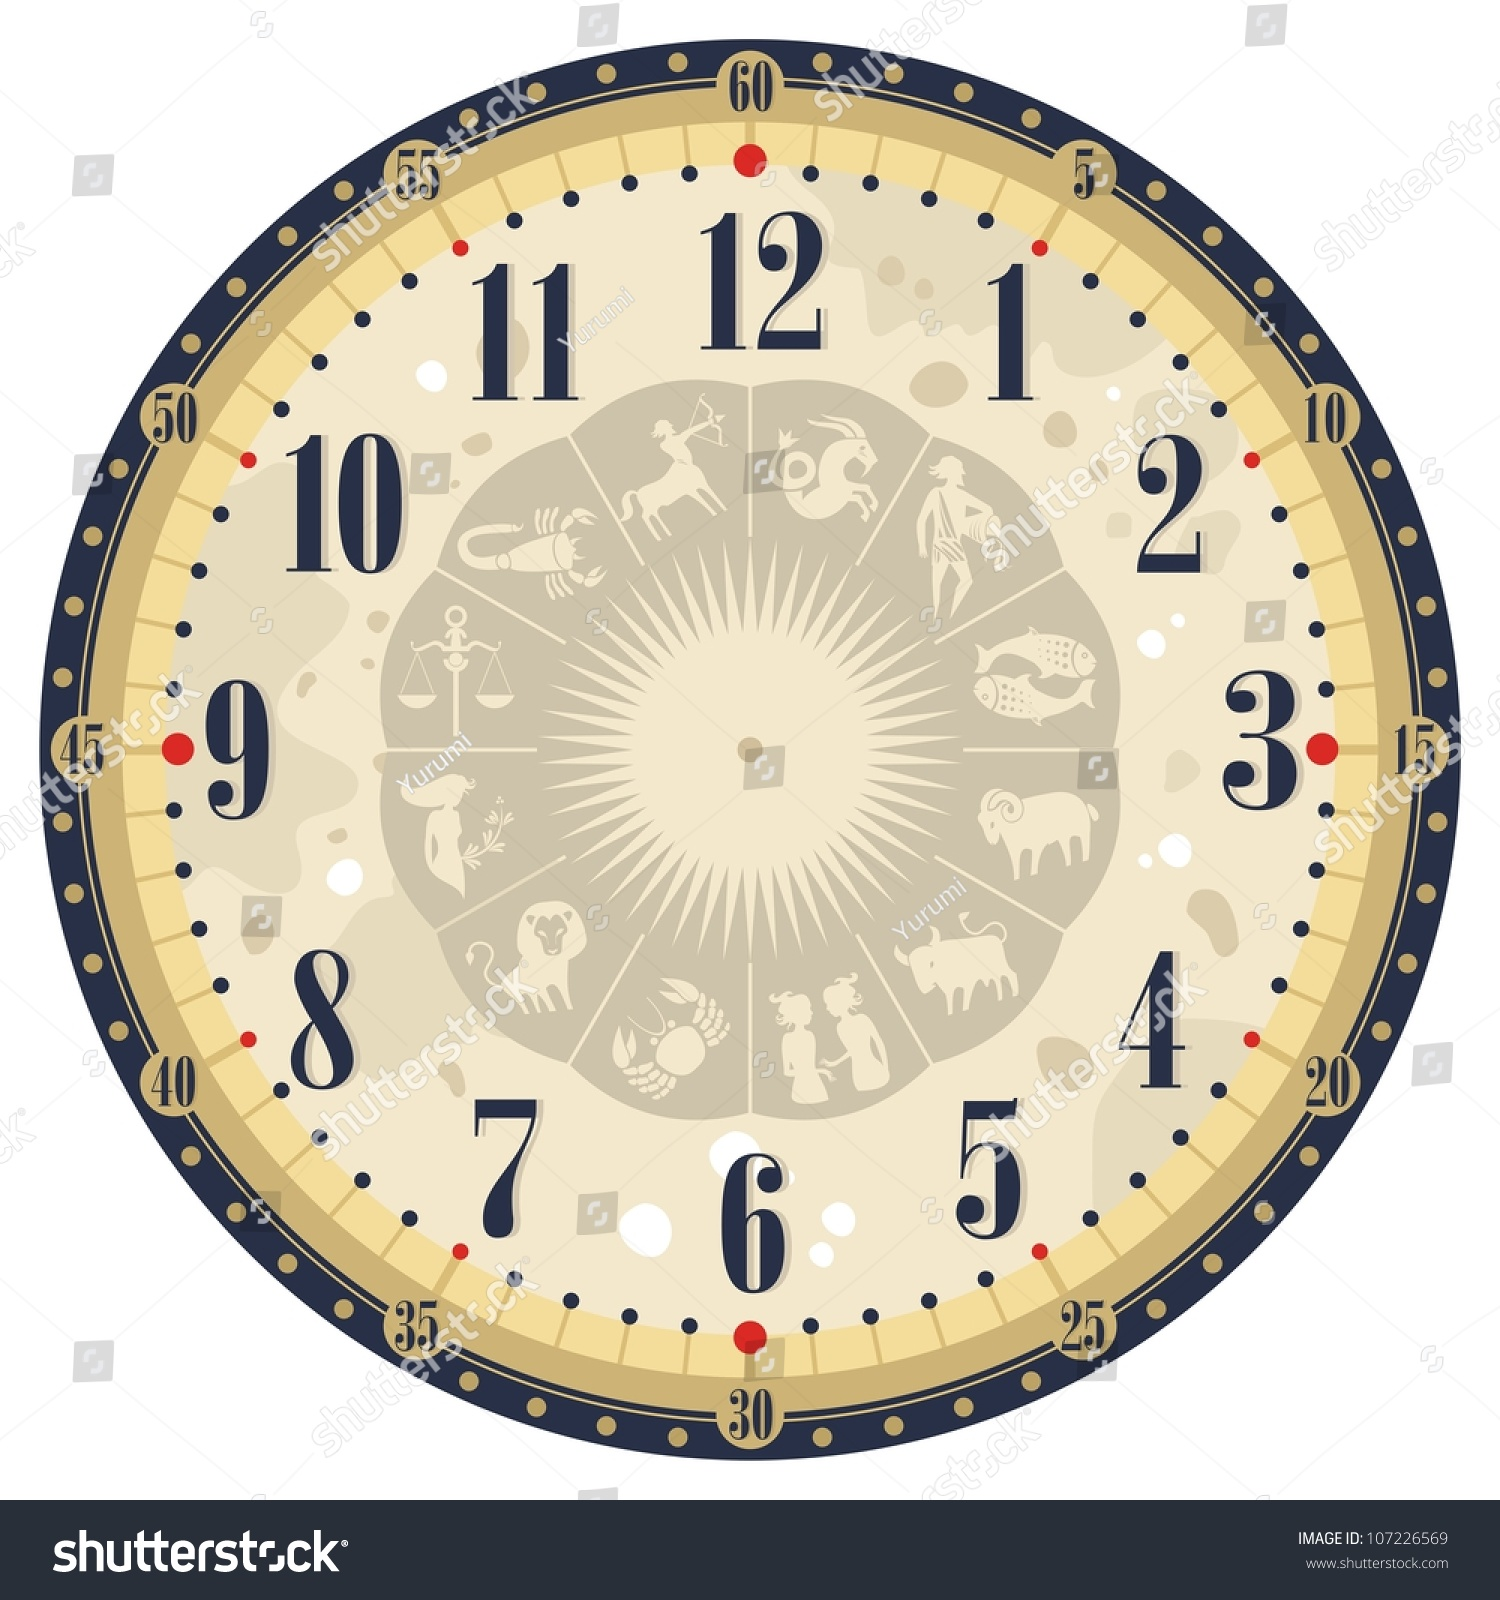 Vintage Clock Face Template Zodiac Signs Stock Vector 107226569 ...